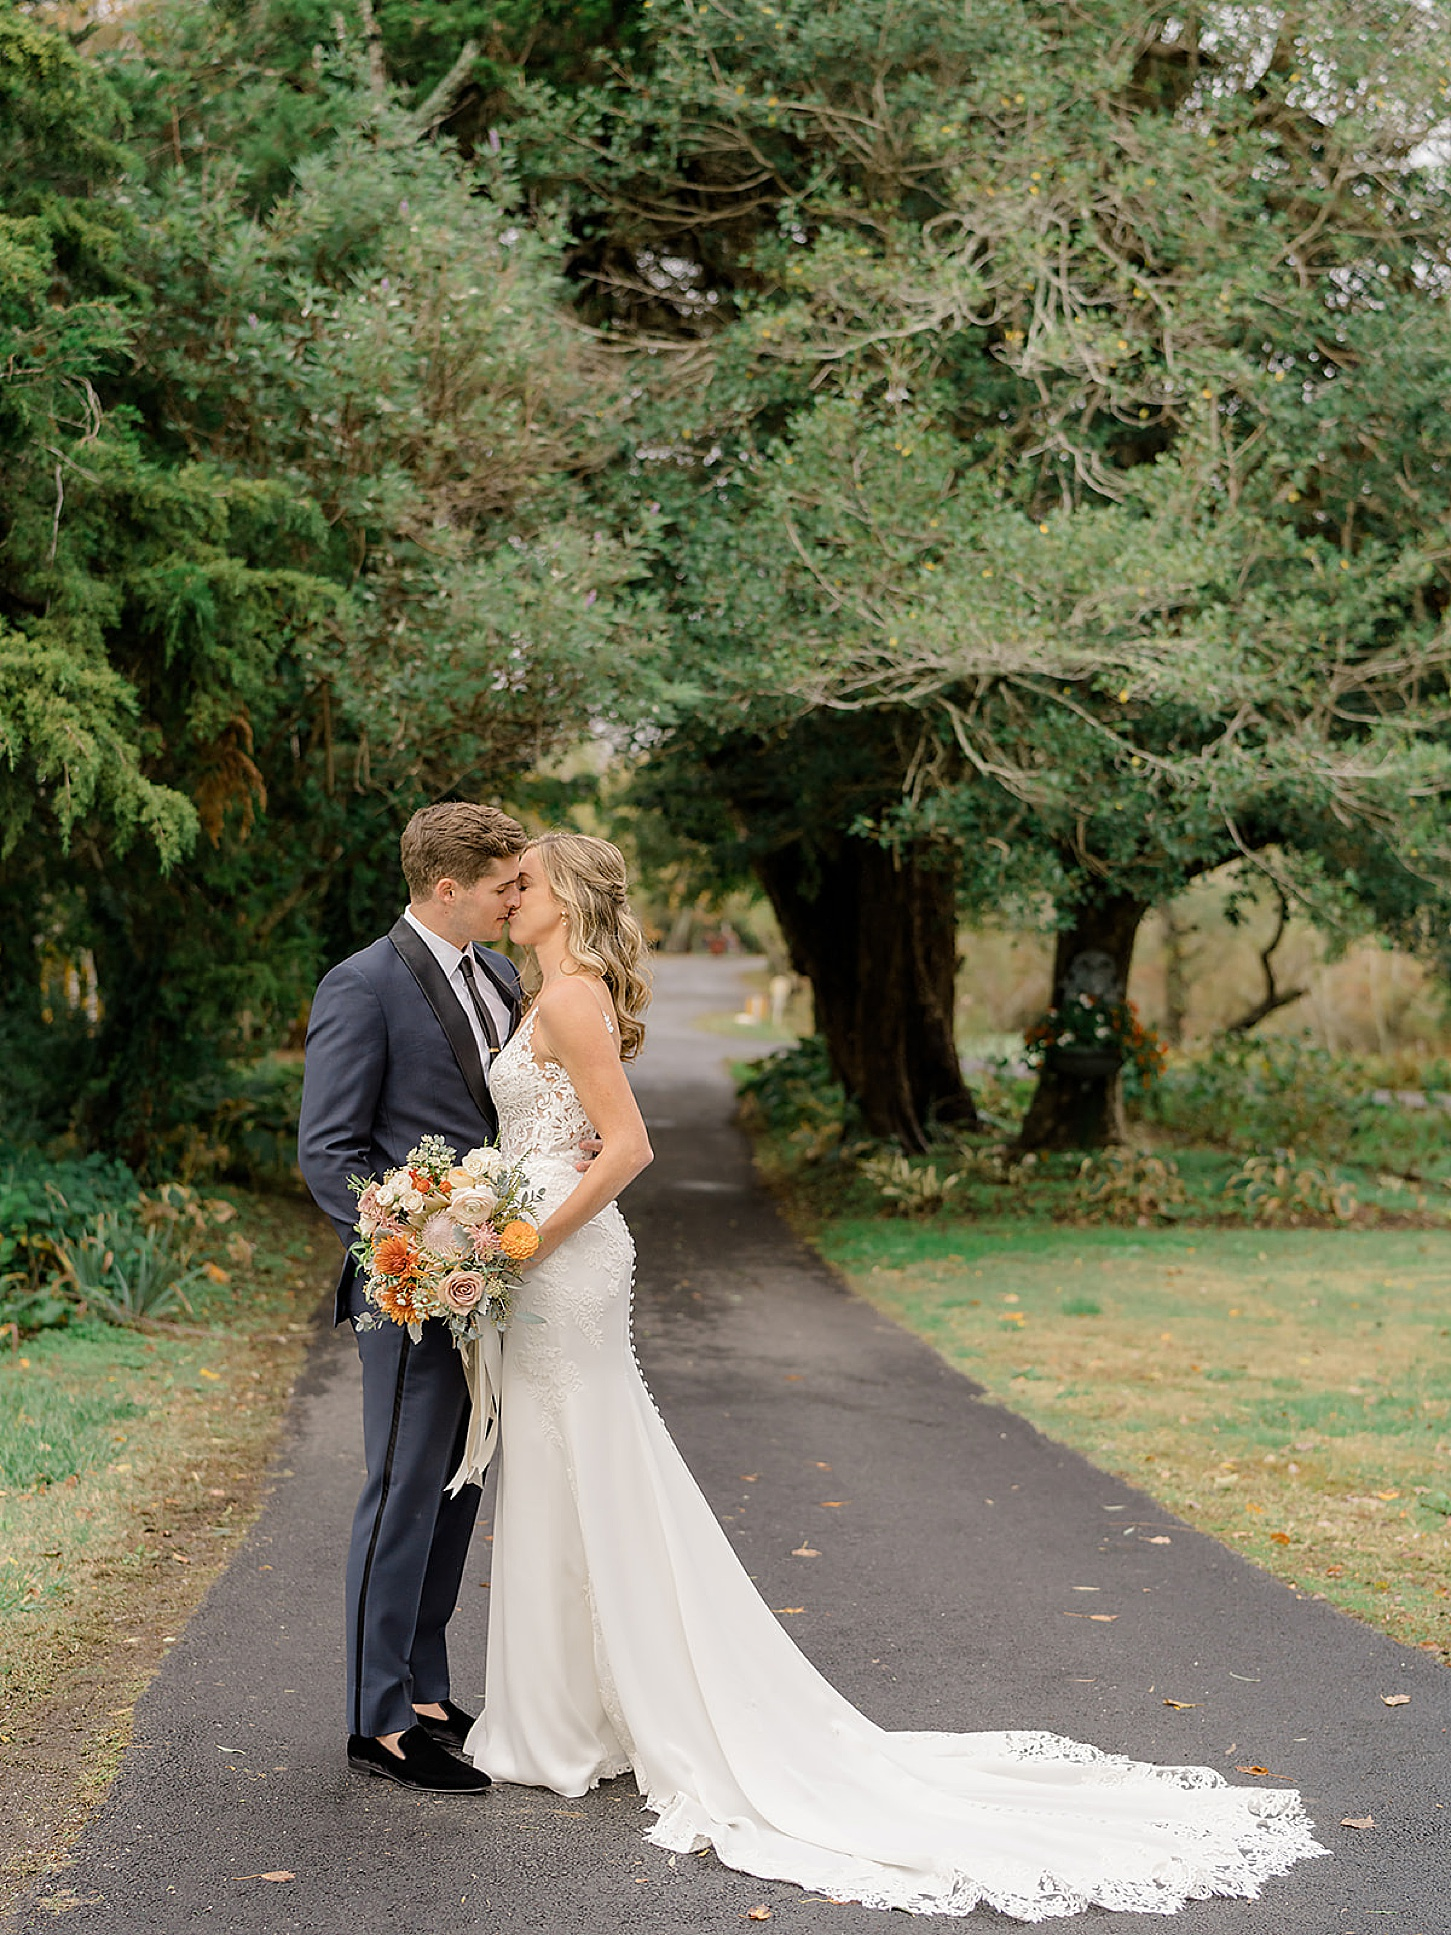 Willow Creek Winery Wedding Photography by Magdalena Studios Marybeth 0020